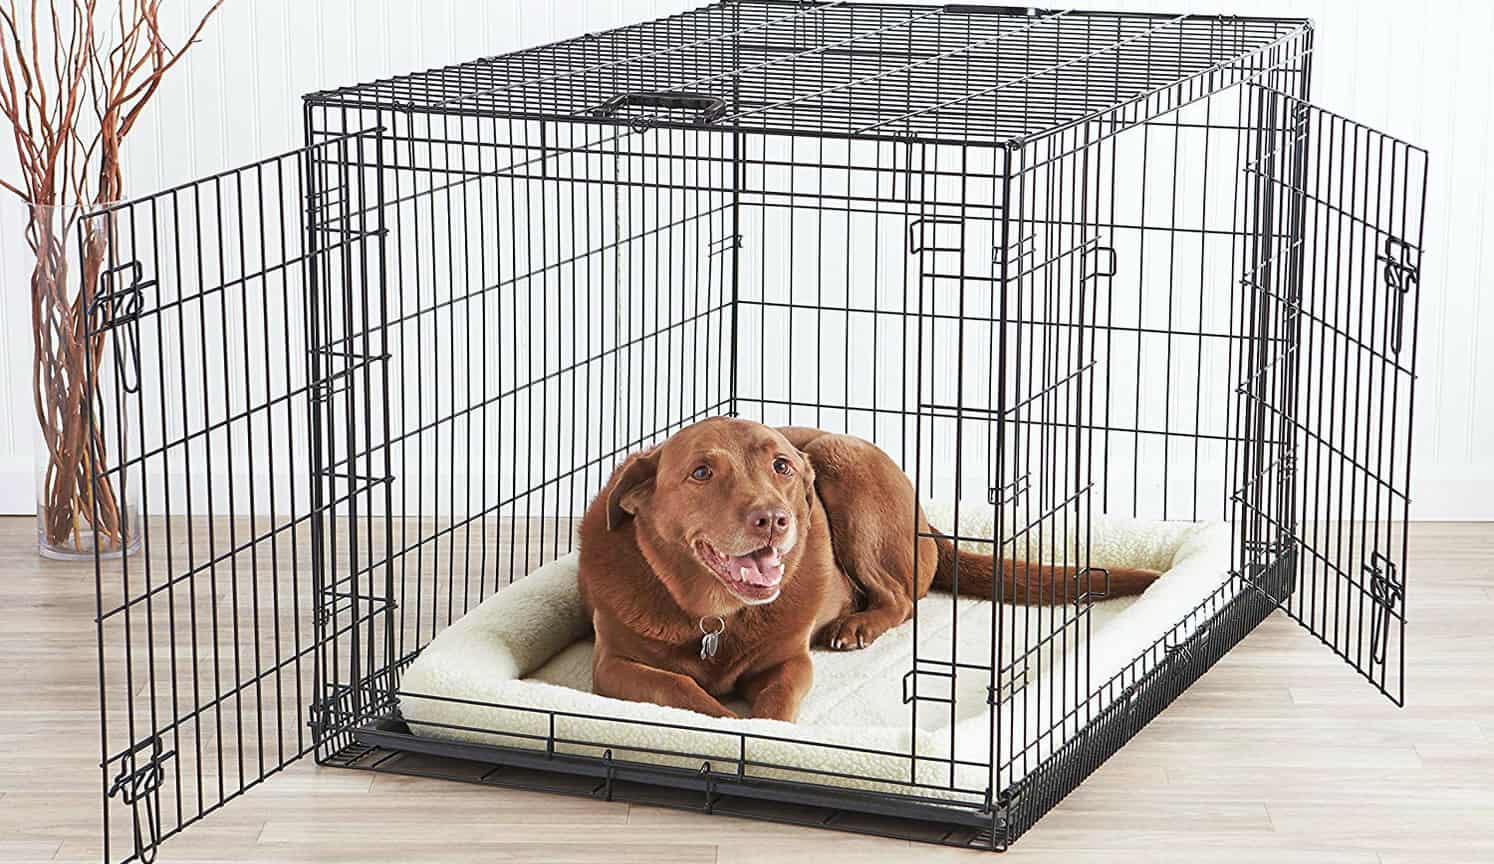 Double Door Dog Crate as the second related product of the Best Dog Crate